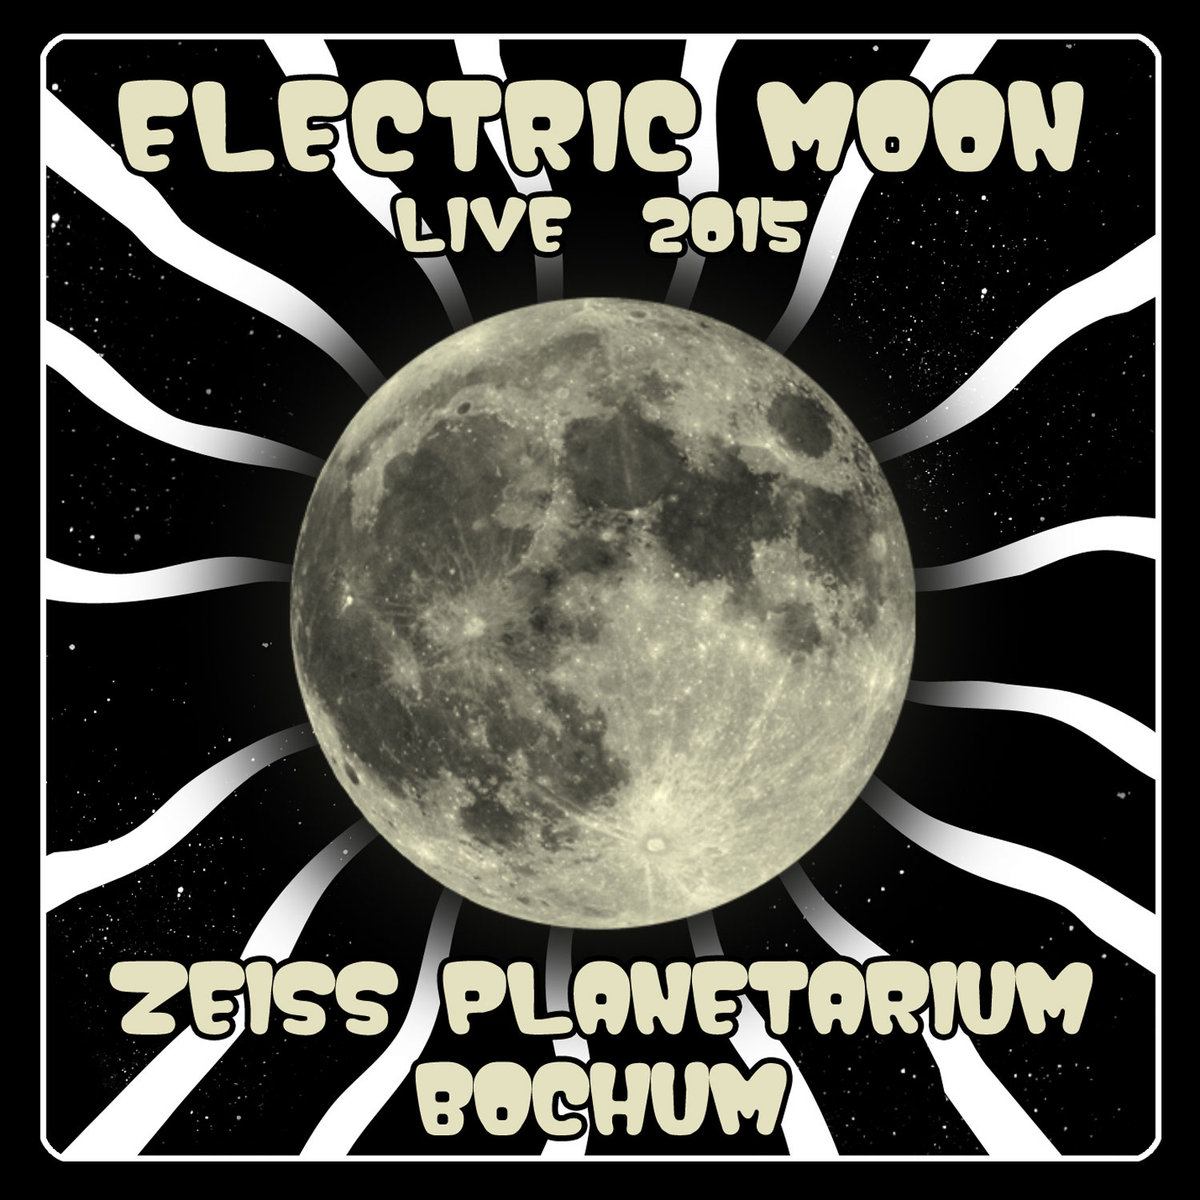 Electric Moon - Zeiss Planetarium Bochum